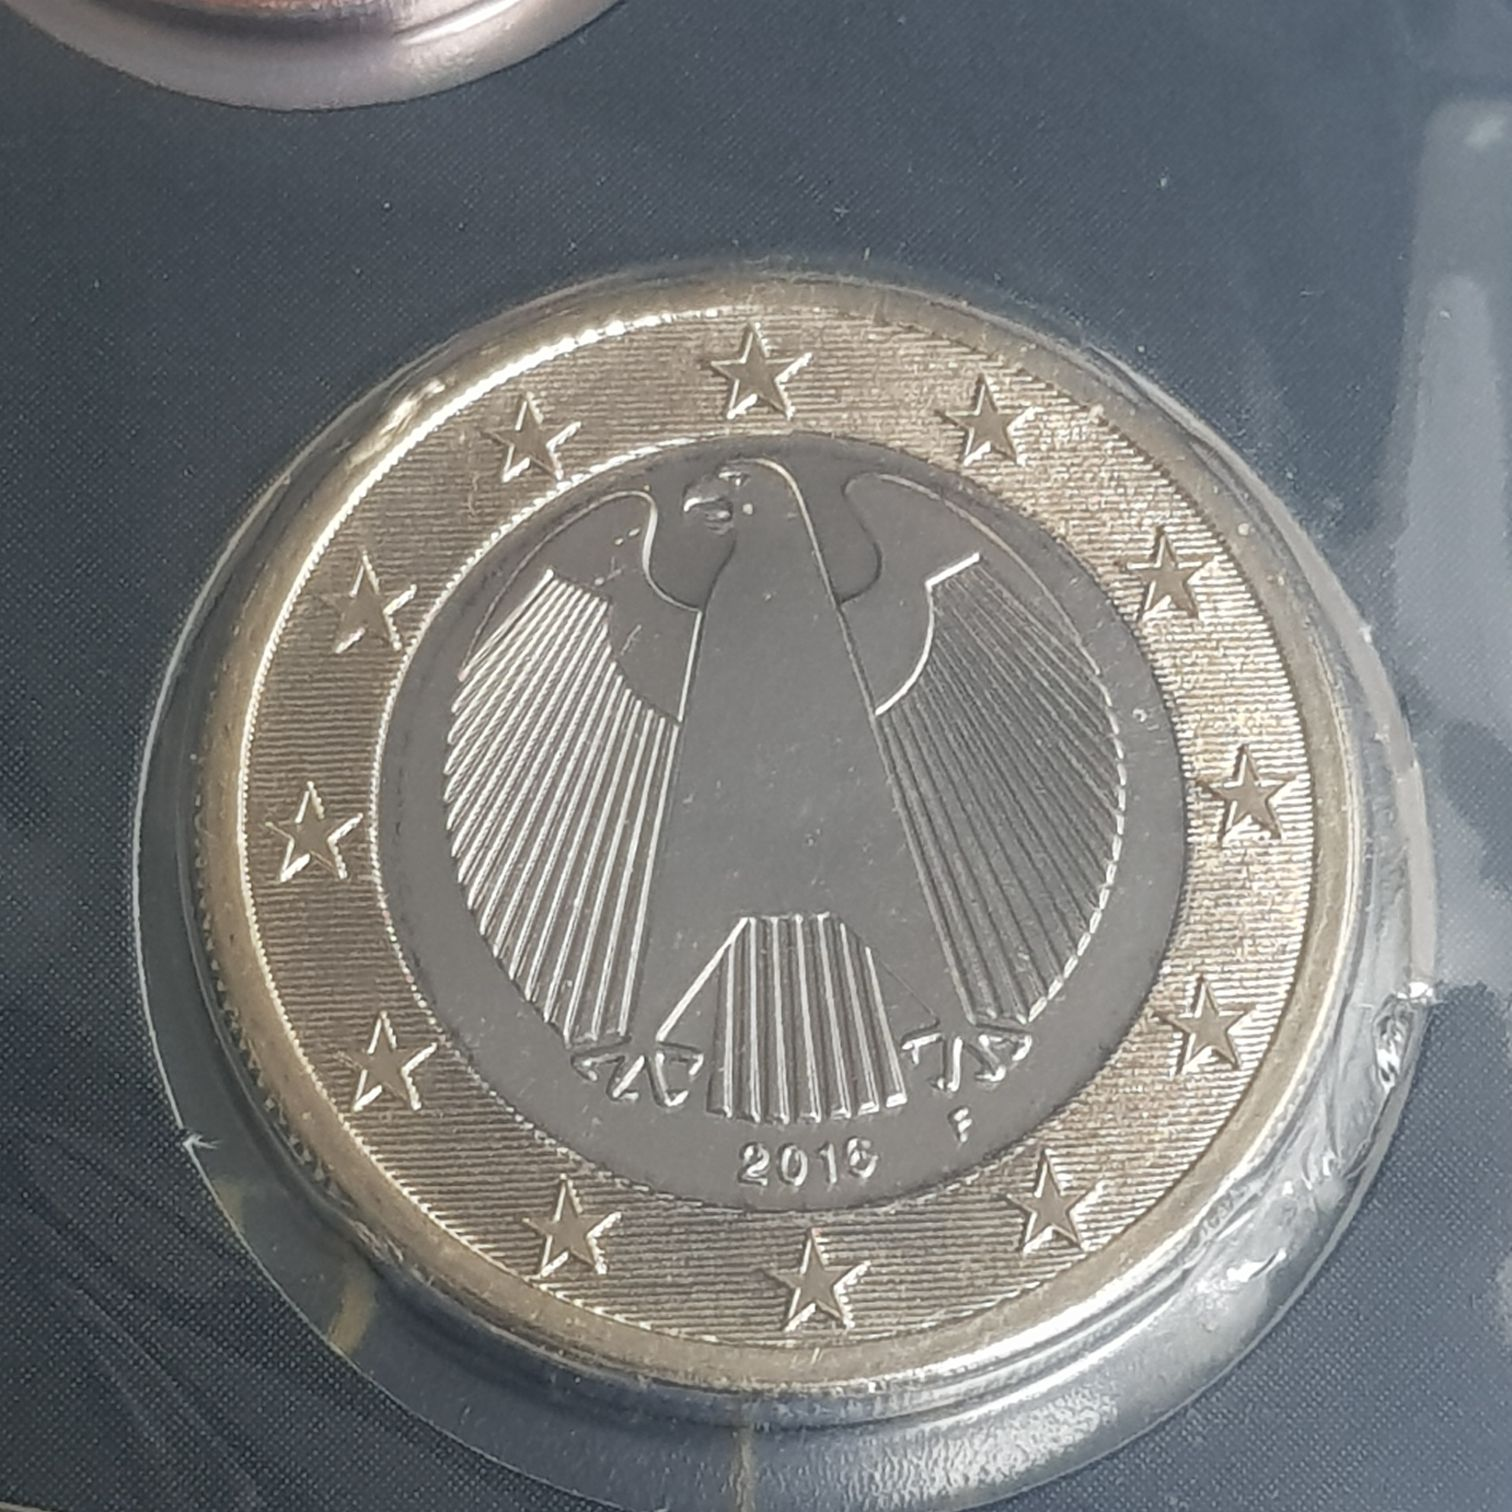 1 Euro Coin - $1 (2016) back image (back cover, second image)